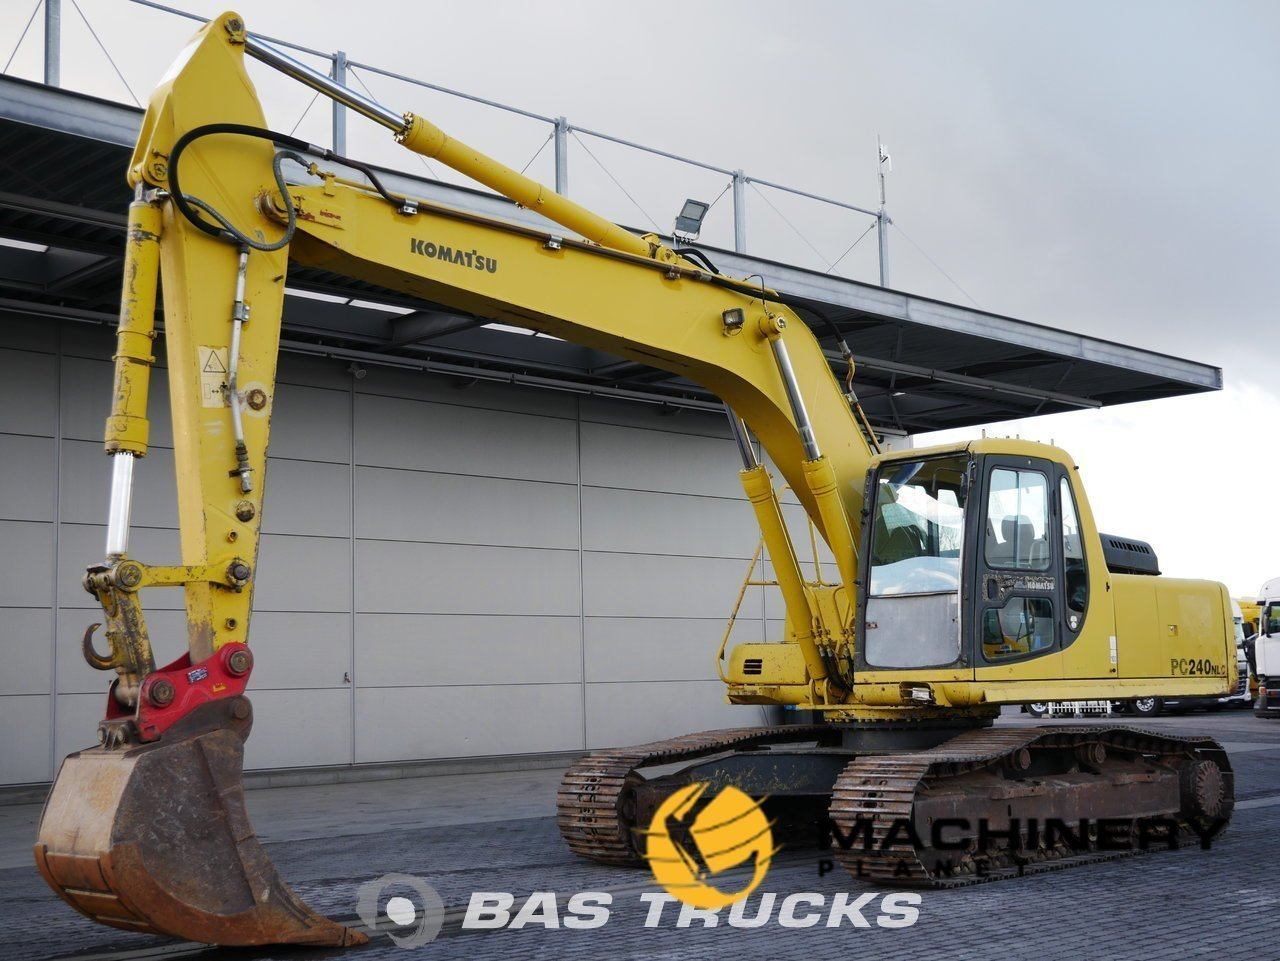 Used-Construction-equipment-Komatsu-PC240NLC-Track-1996_143686_1-1554126036973_5ca214d4eda80-1.jpg